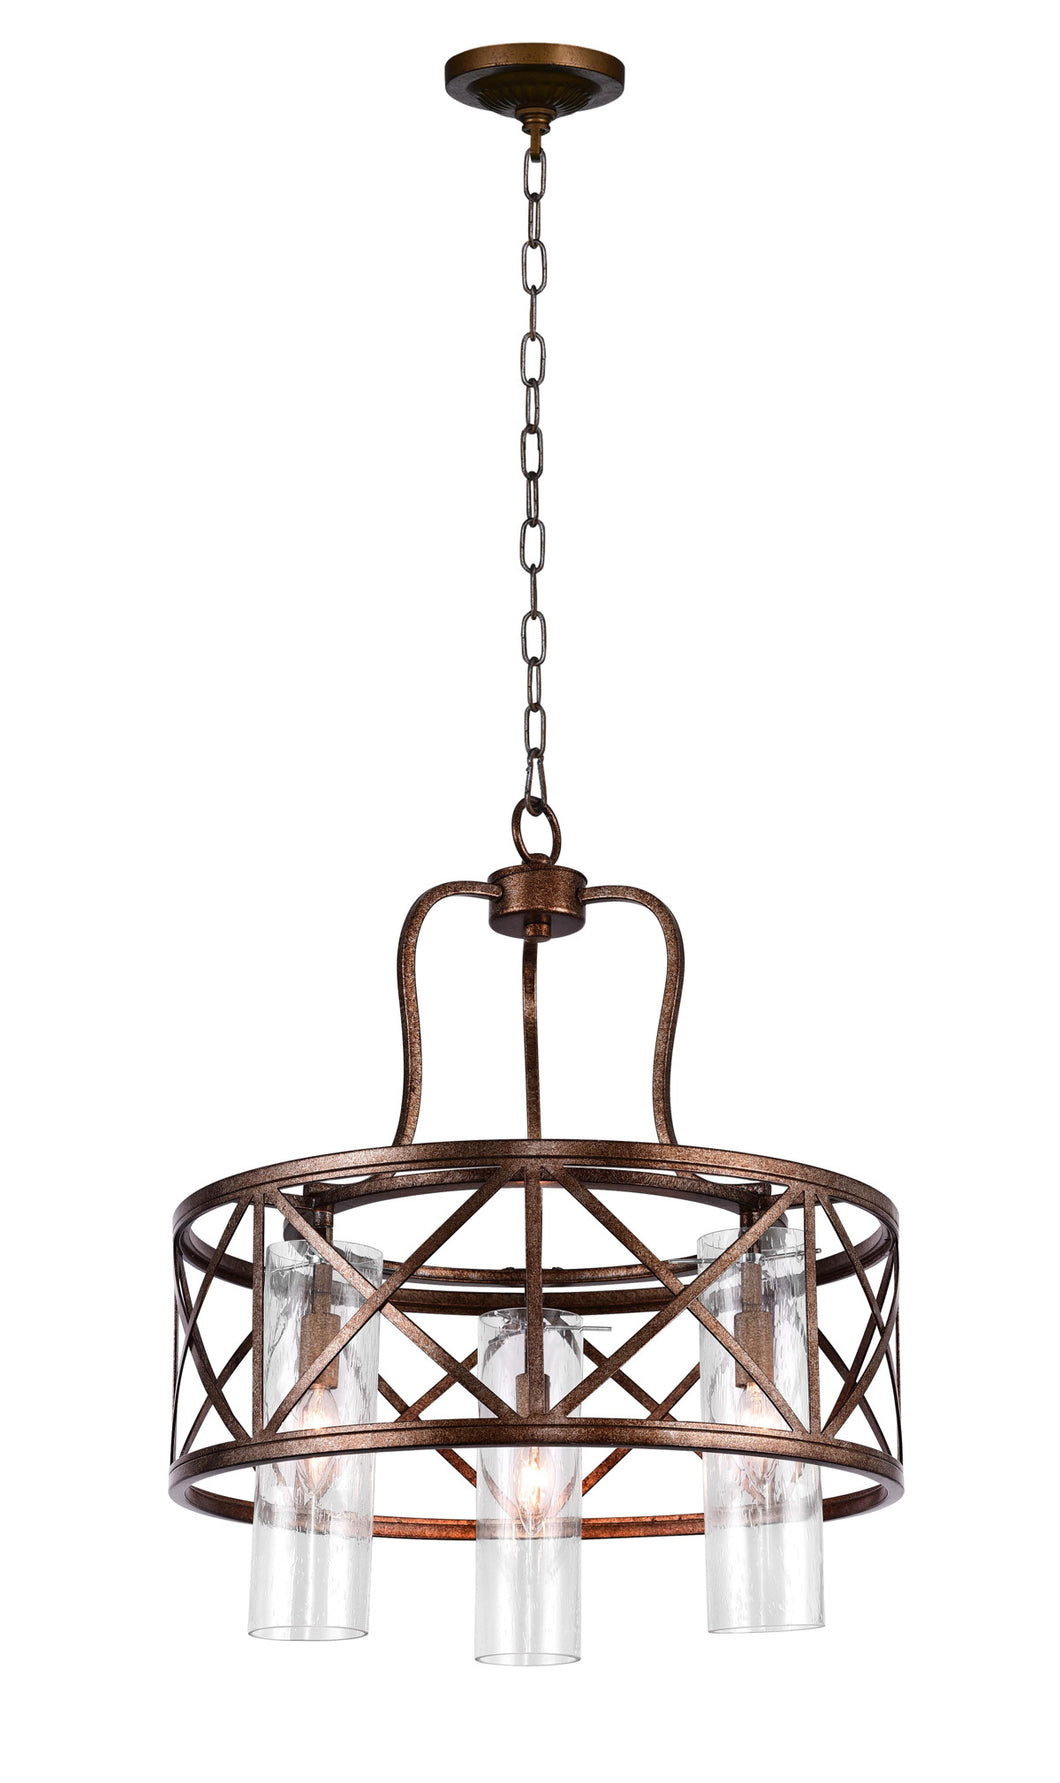 3 Light Chandelier with Wood Grain Bronze Finish